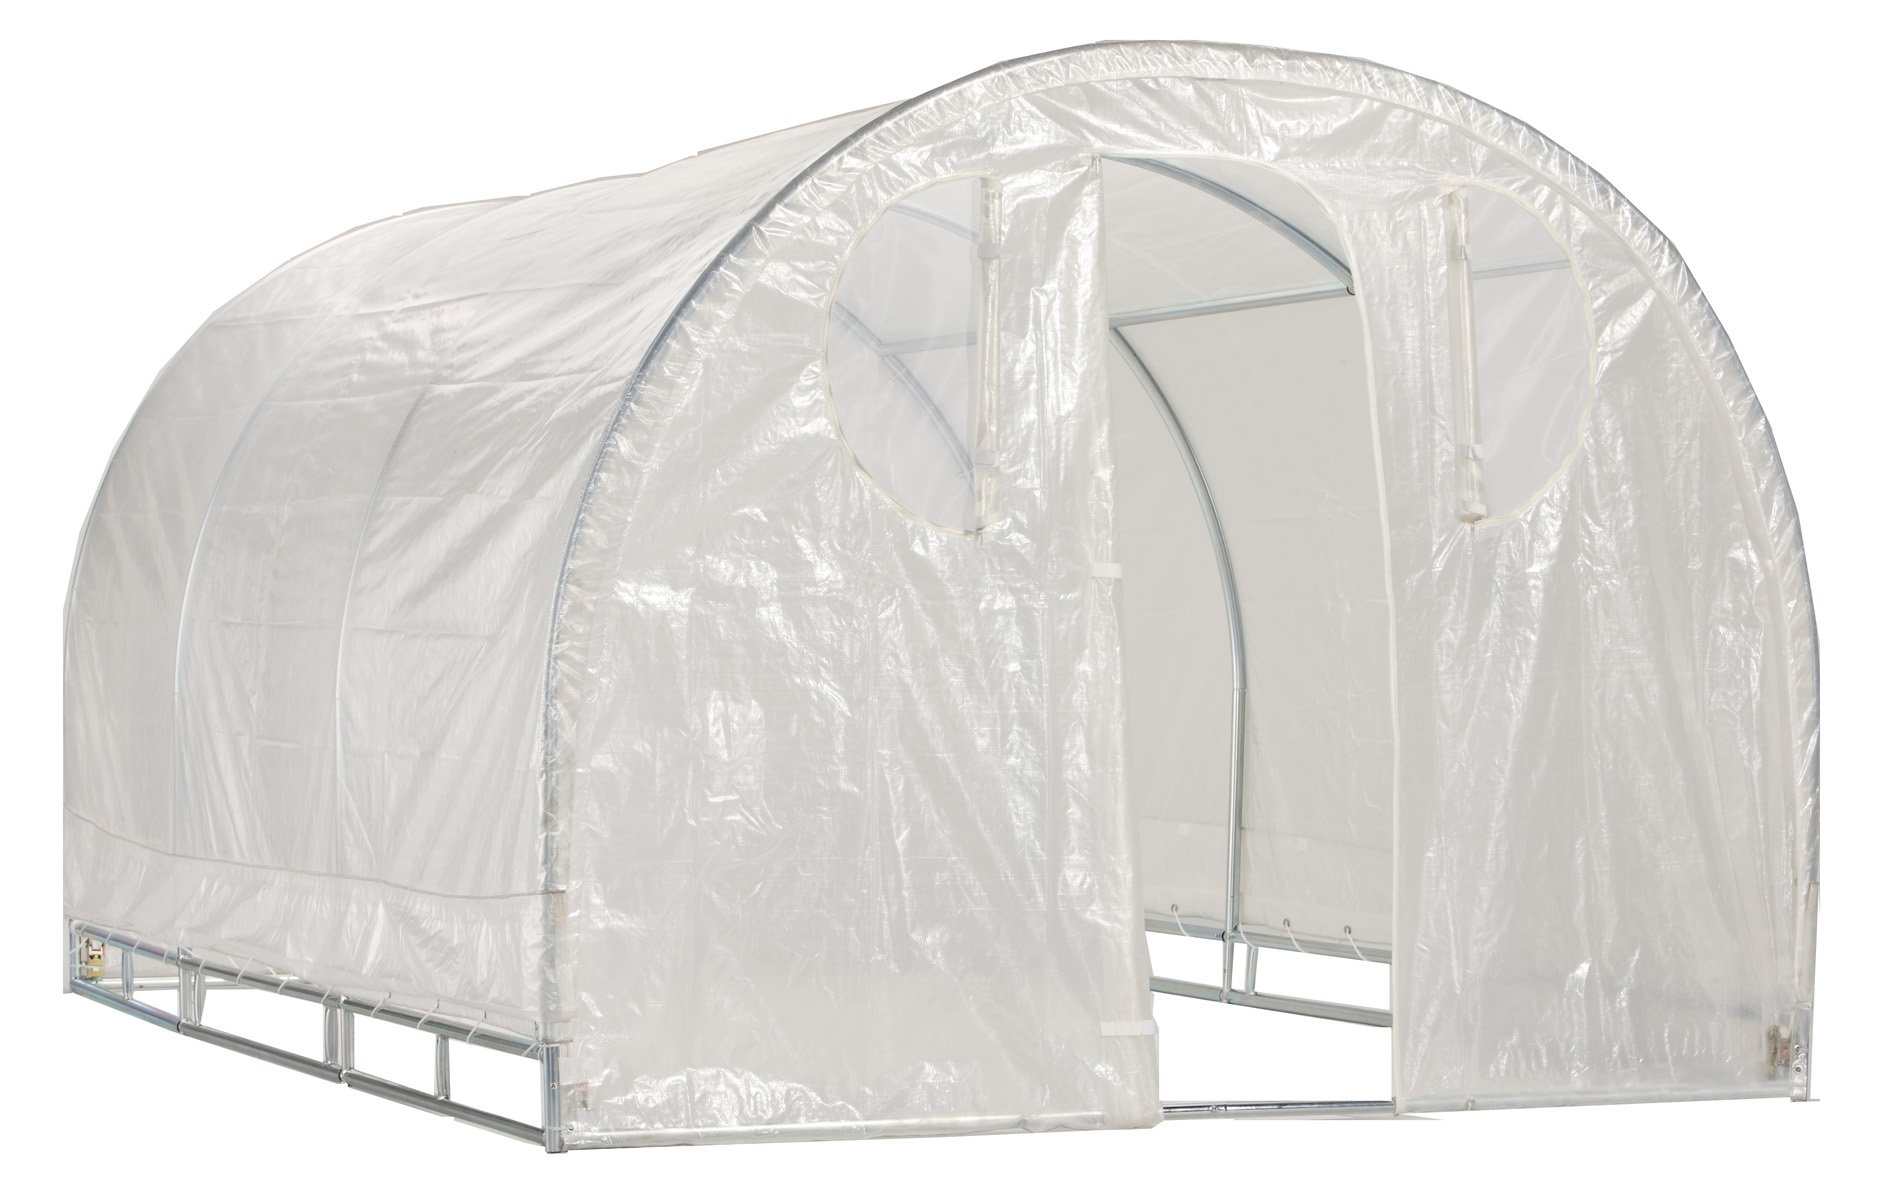 Greenhouse-Weatherguard Walk In Arched Top Garden Hot House Fully Enclosed - Screend Windows for Ventilation, Zippered Door (8'W x 12'L x 6'6'''H) Mid Size Greenhouse for Backyards or Large Decks and Patios